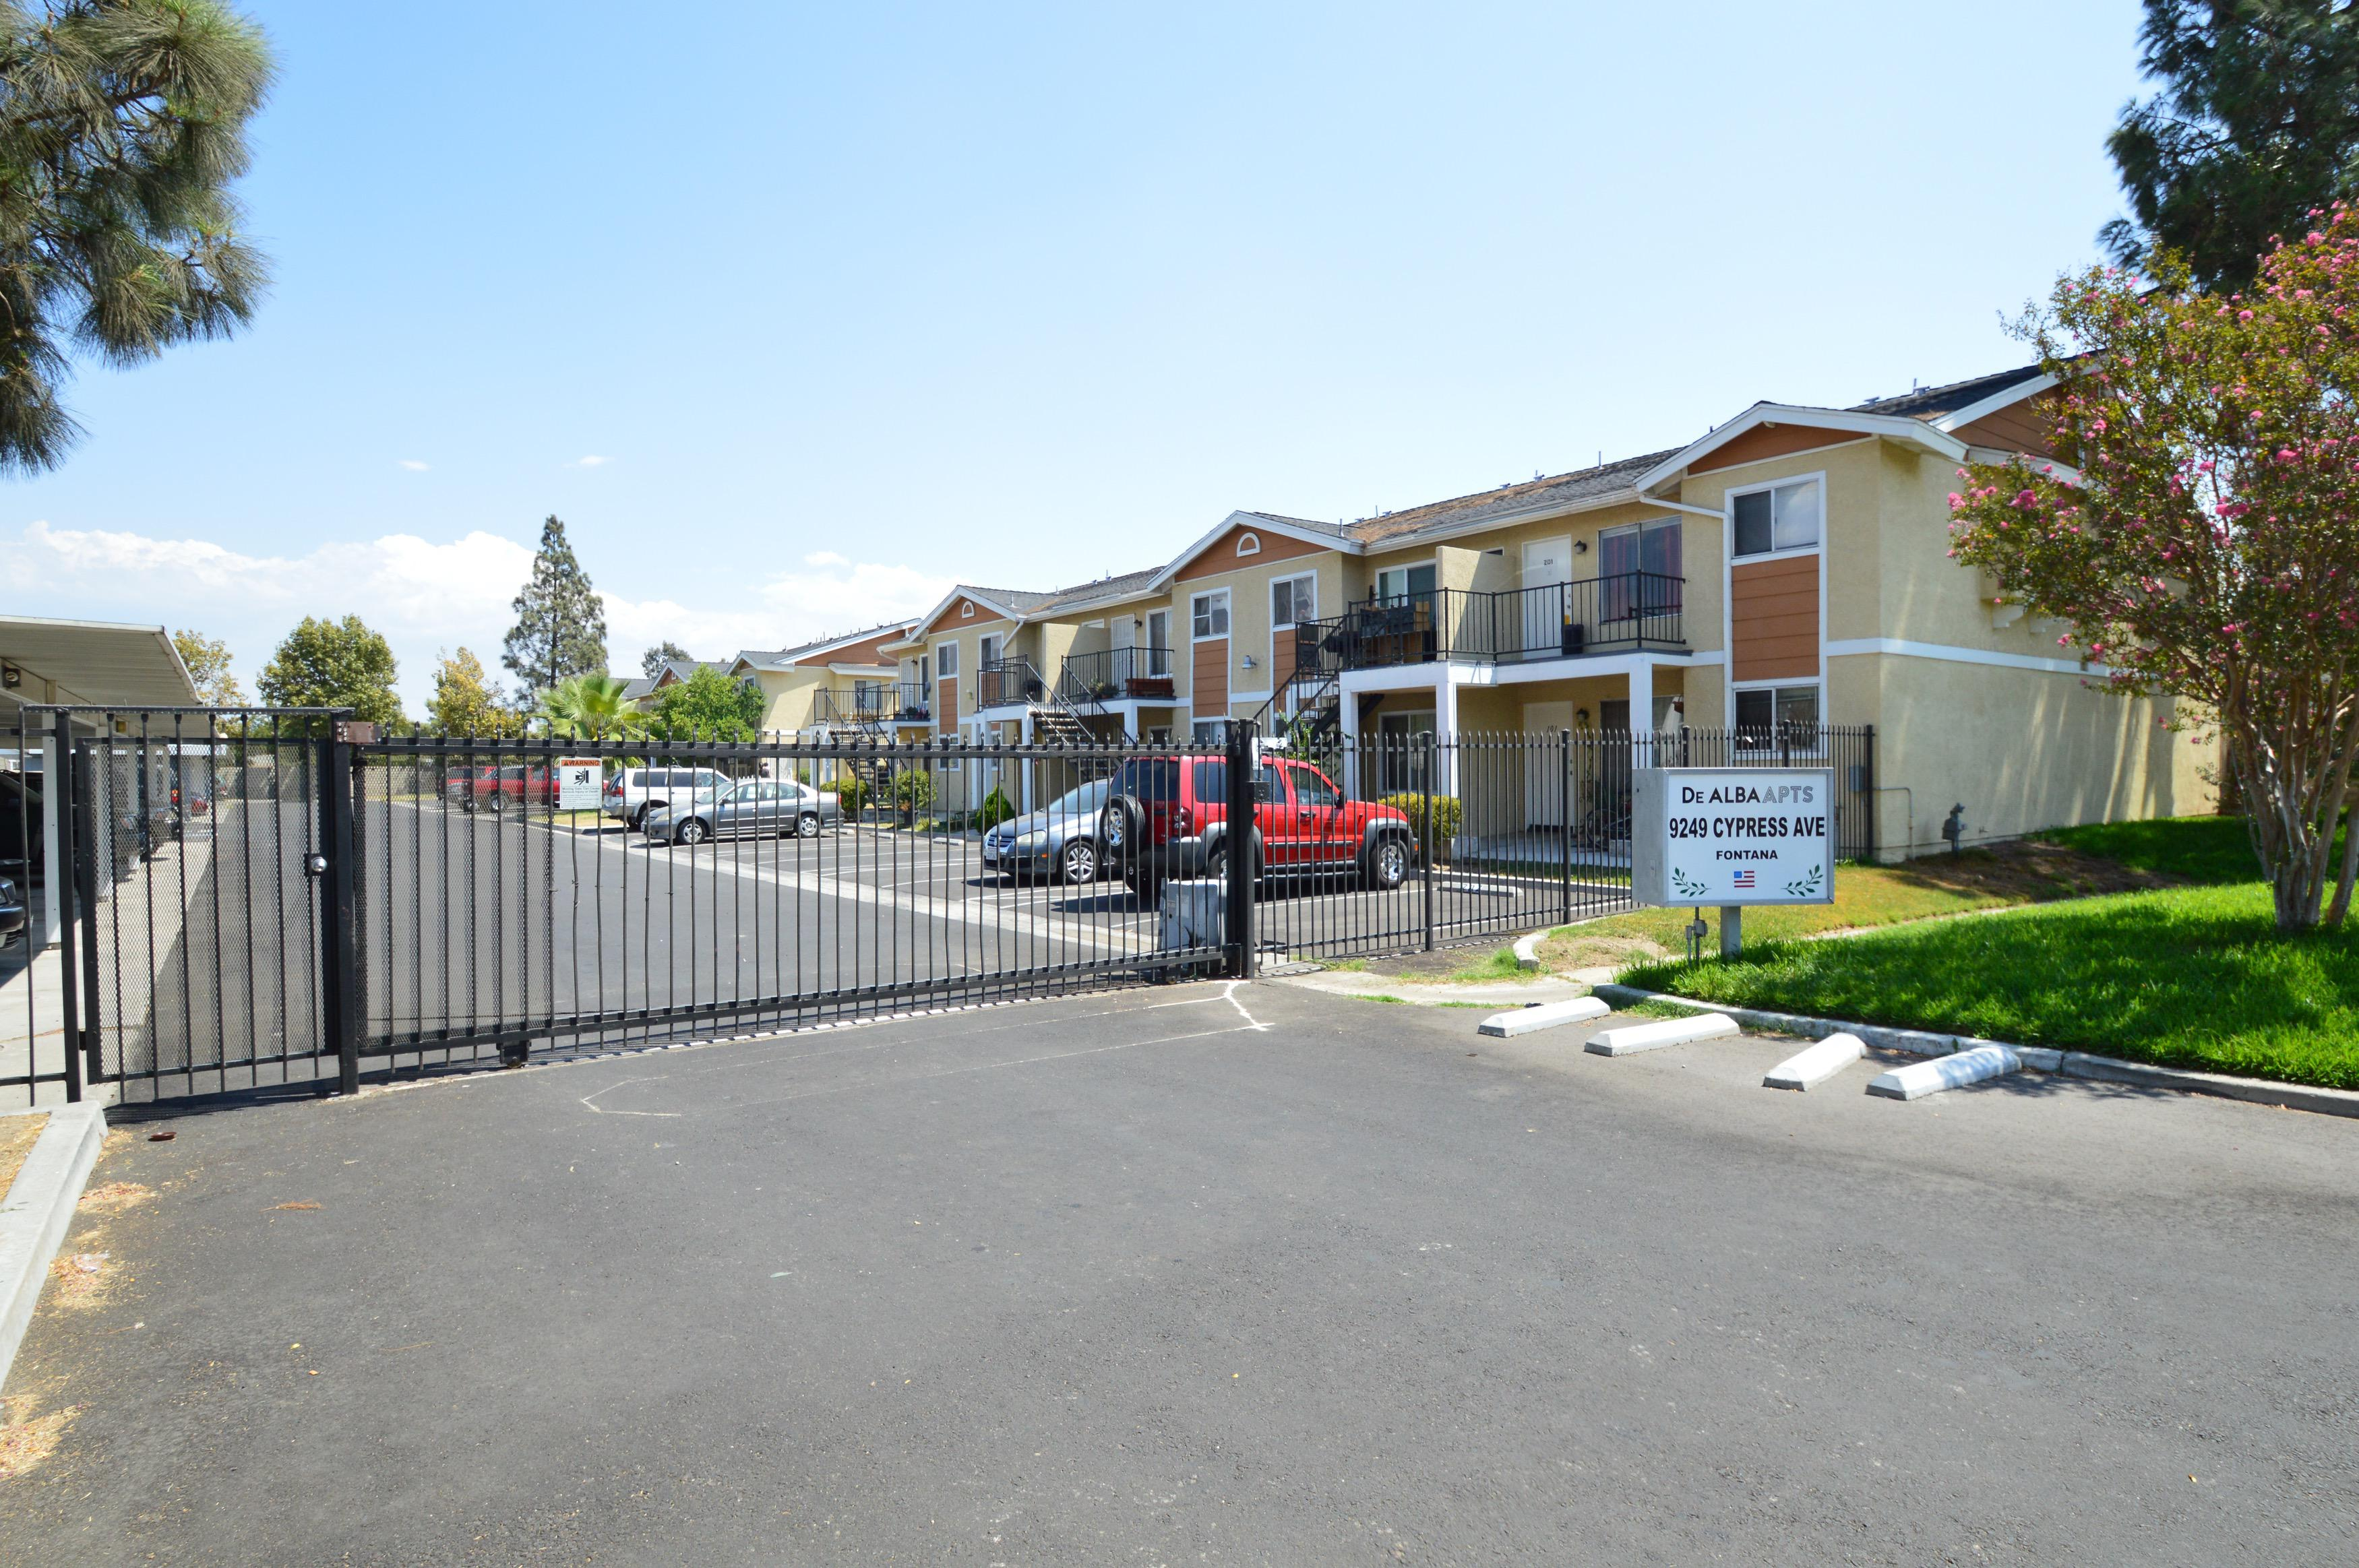 21 Units in Fontana - The Apartment Dealer